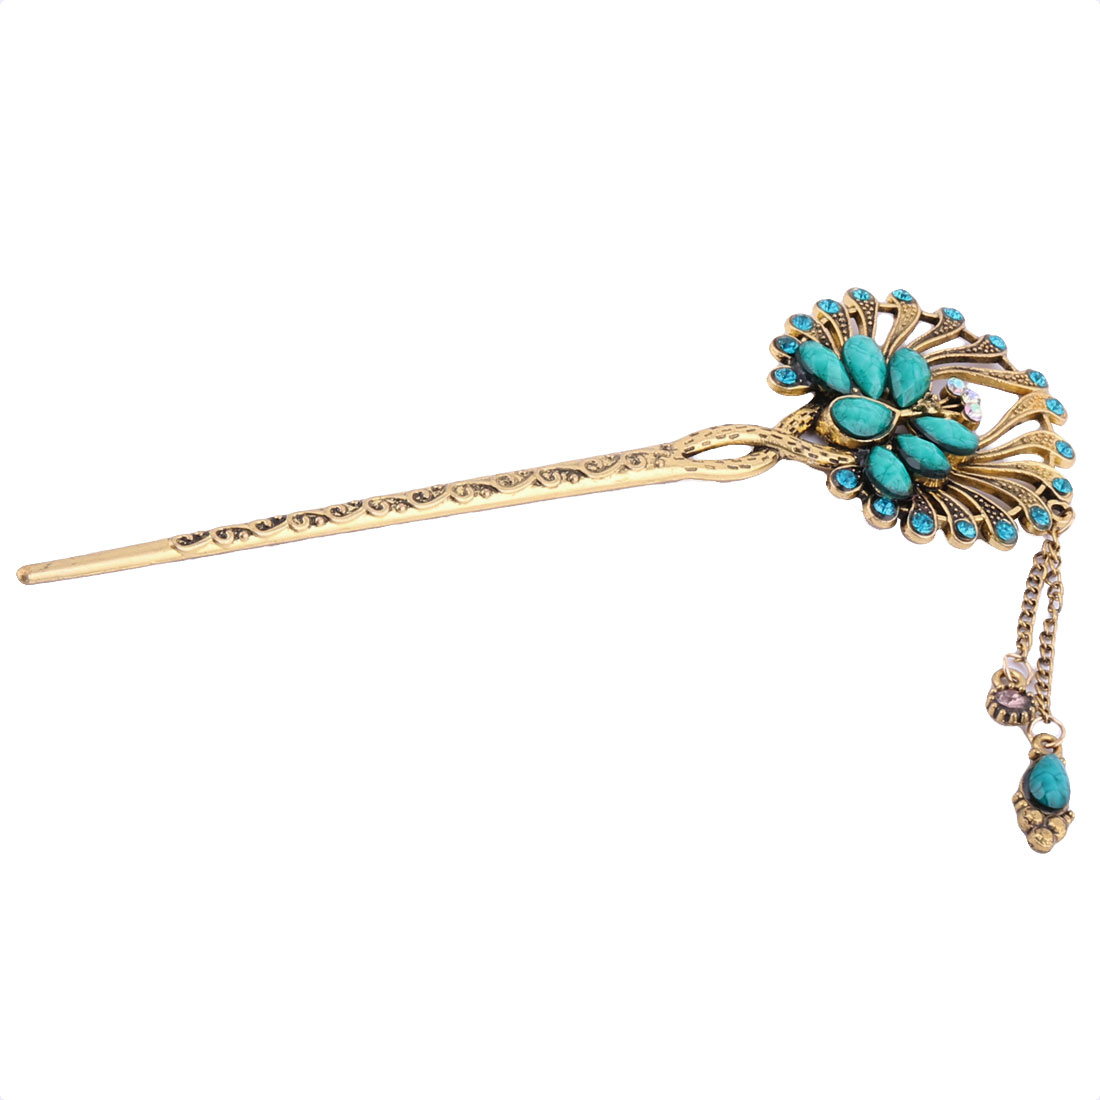 Studio Lady Retro Peacock Decor Tassel Artificial Rhinestones Hair Pin Green